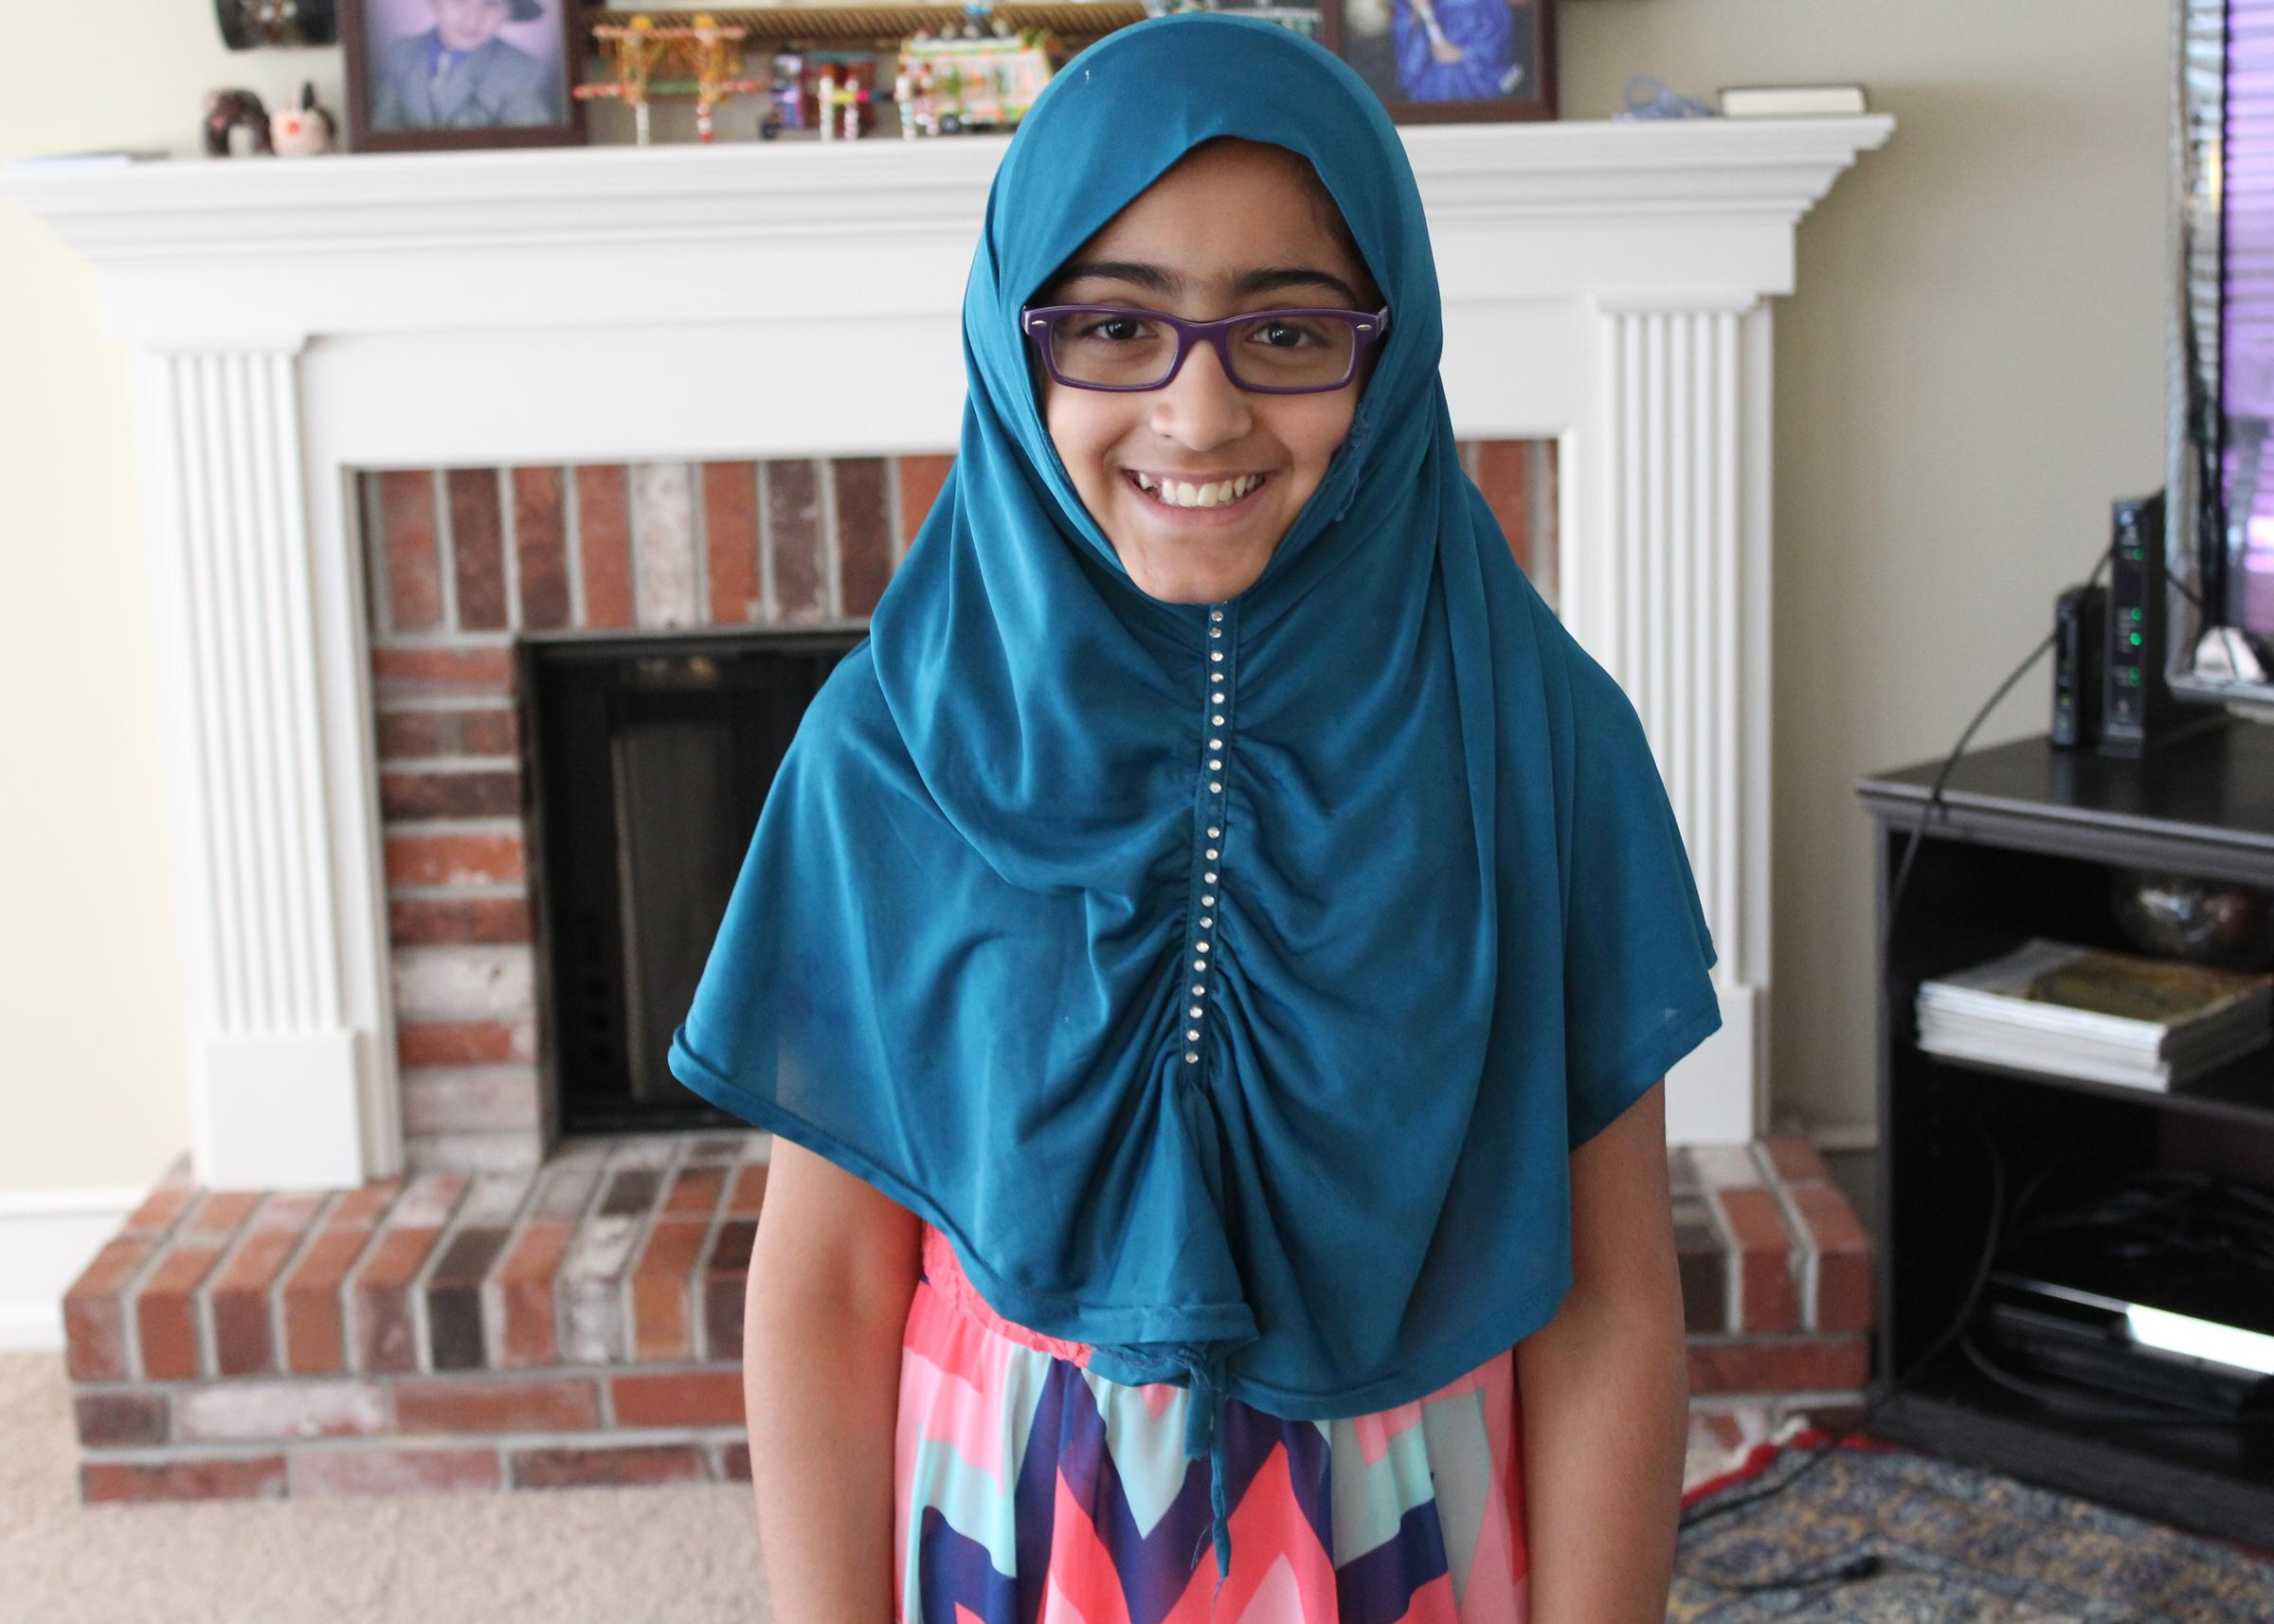 St louis muslims recall their first fasts during ramadan st younger children like 11 year old tanya raja dont have to fast during the month of ramadan like older muslims do but many start practicing at an early kristyandbryce Images